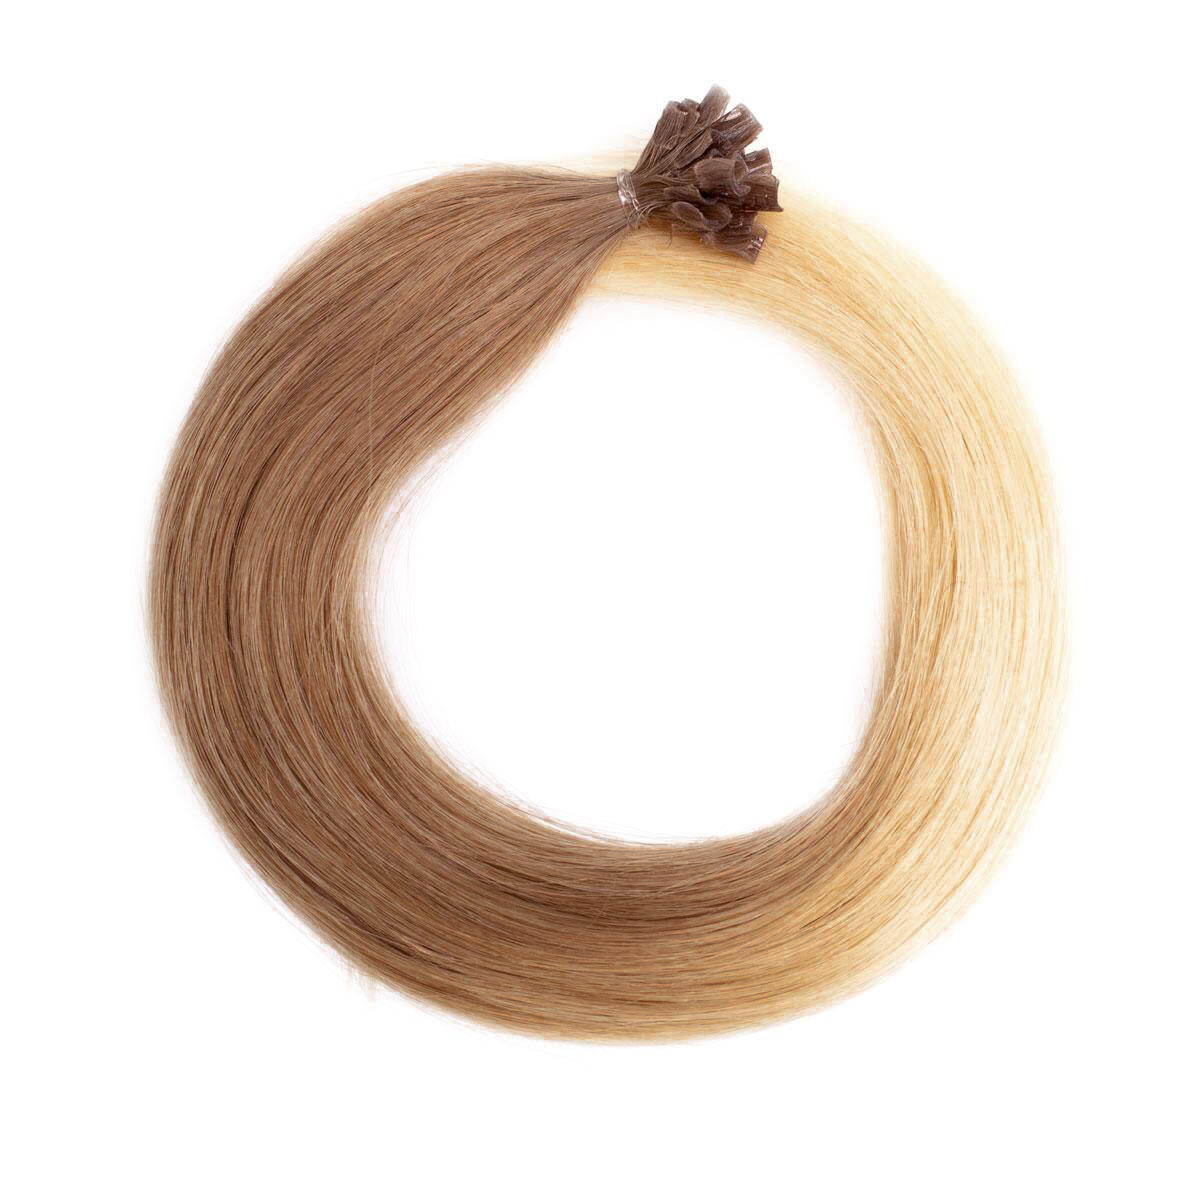 Nail Hair O7.3/10.8 Cendre Ash Blond Ombre 50 cm